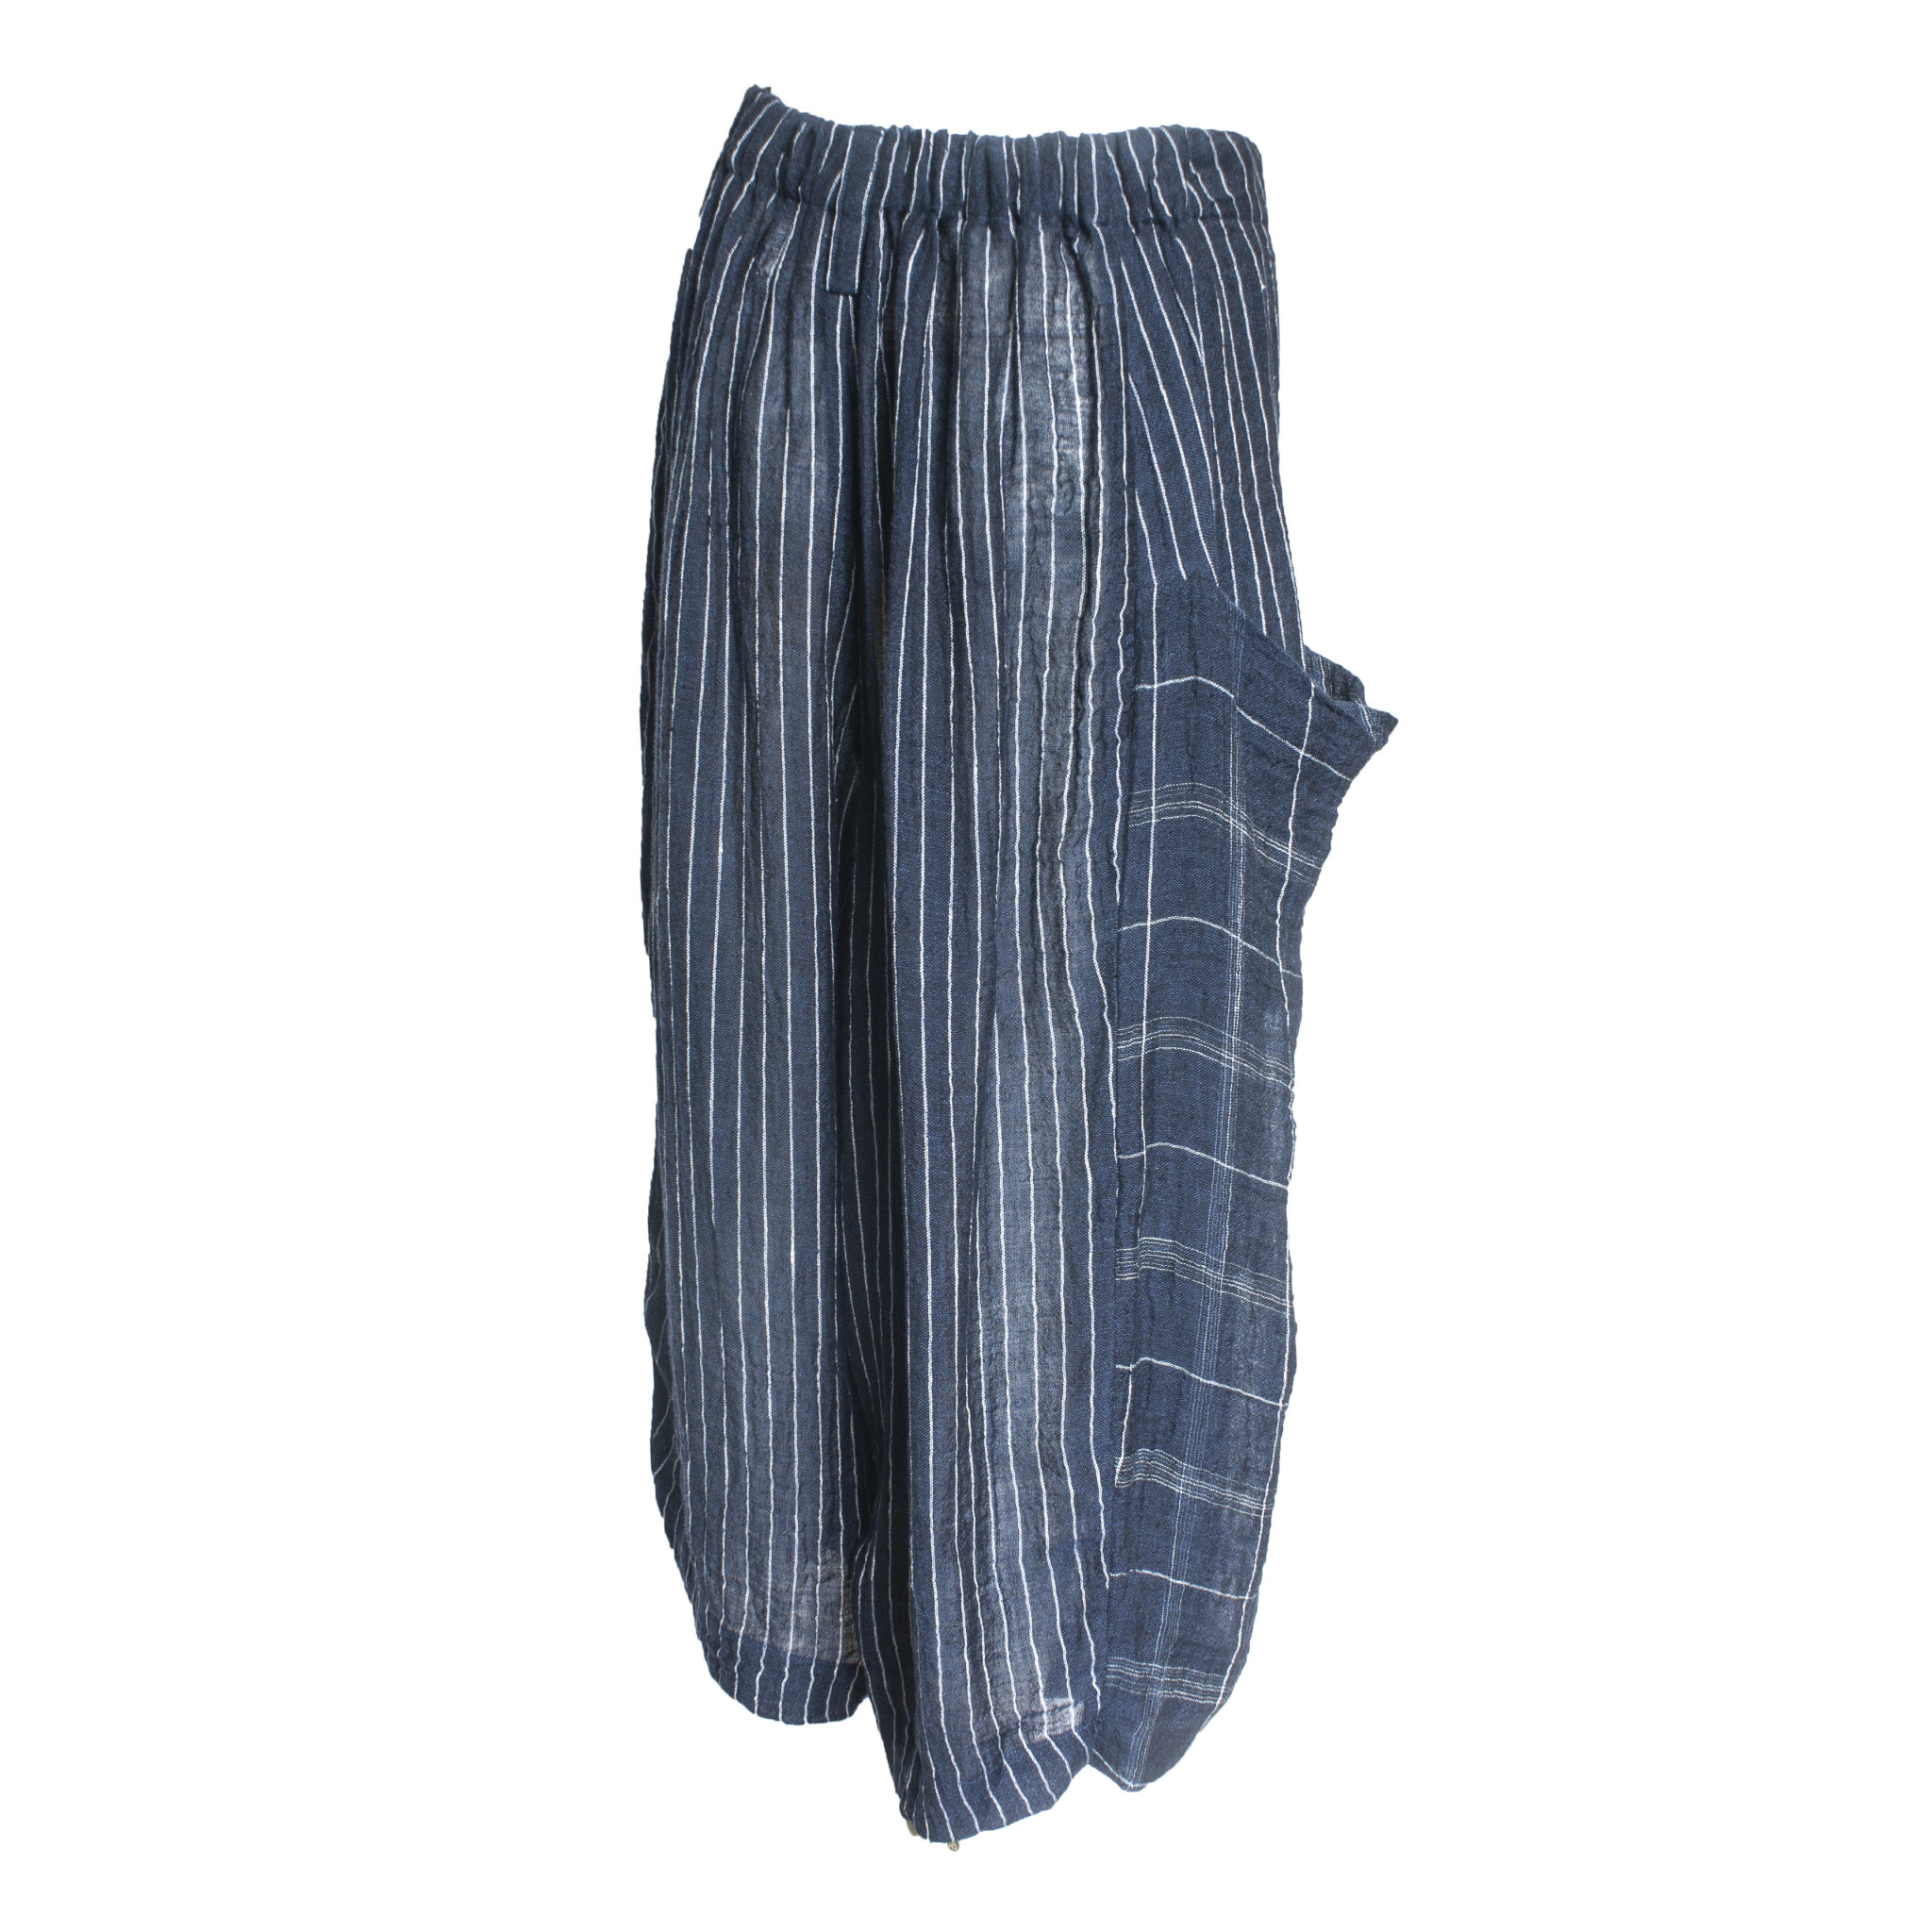 Crea Concept Crea Concept Crop Panel Pants - Navy Plaid